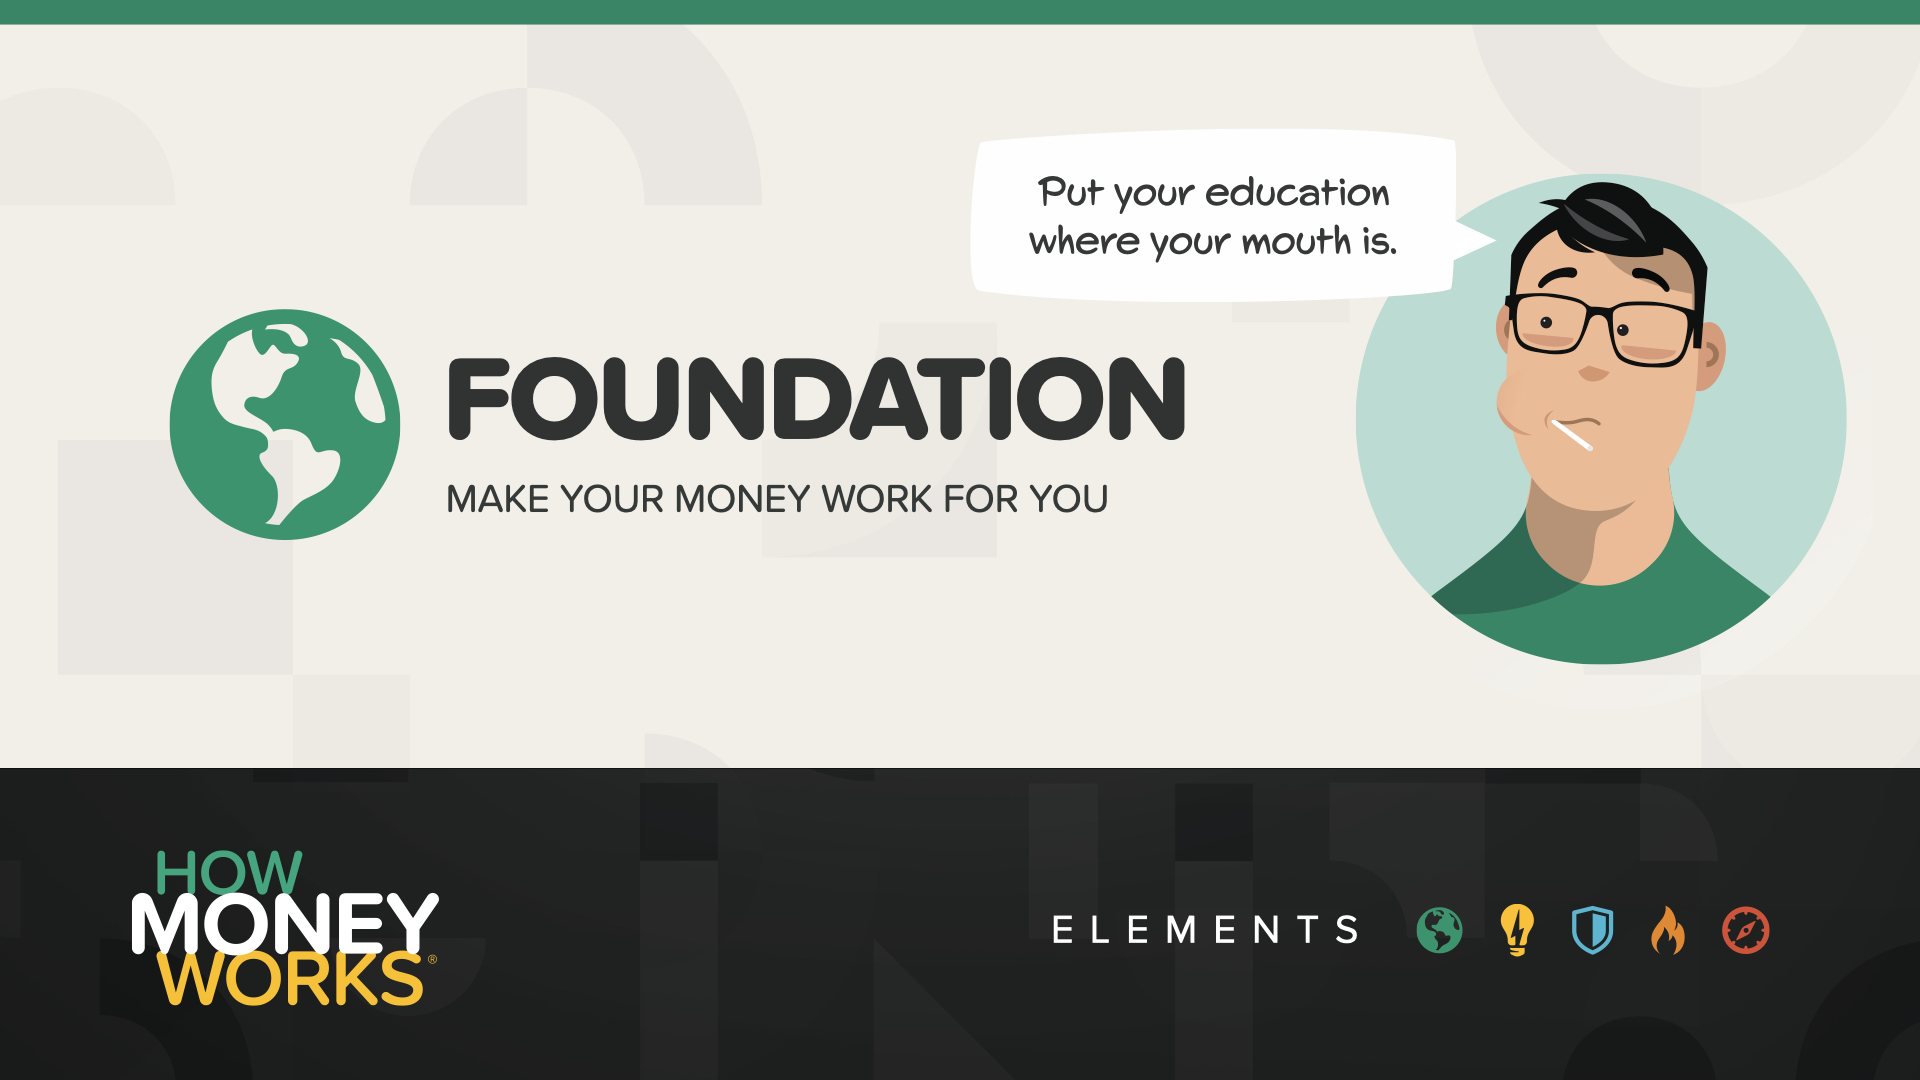 ELEMENTS - Foundation